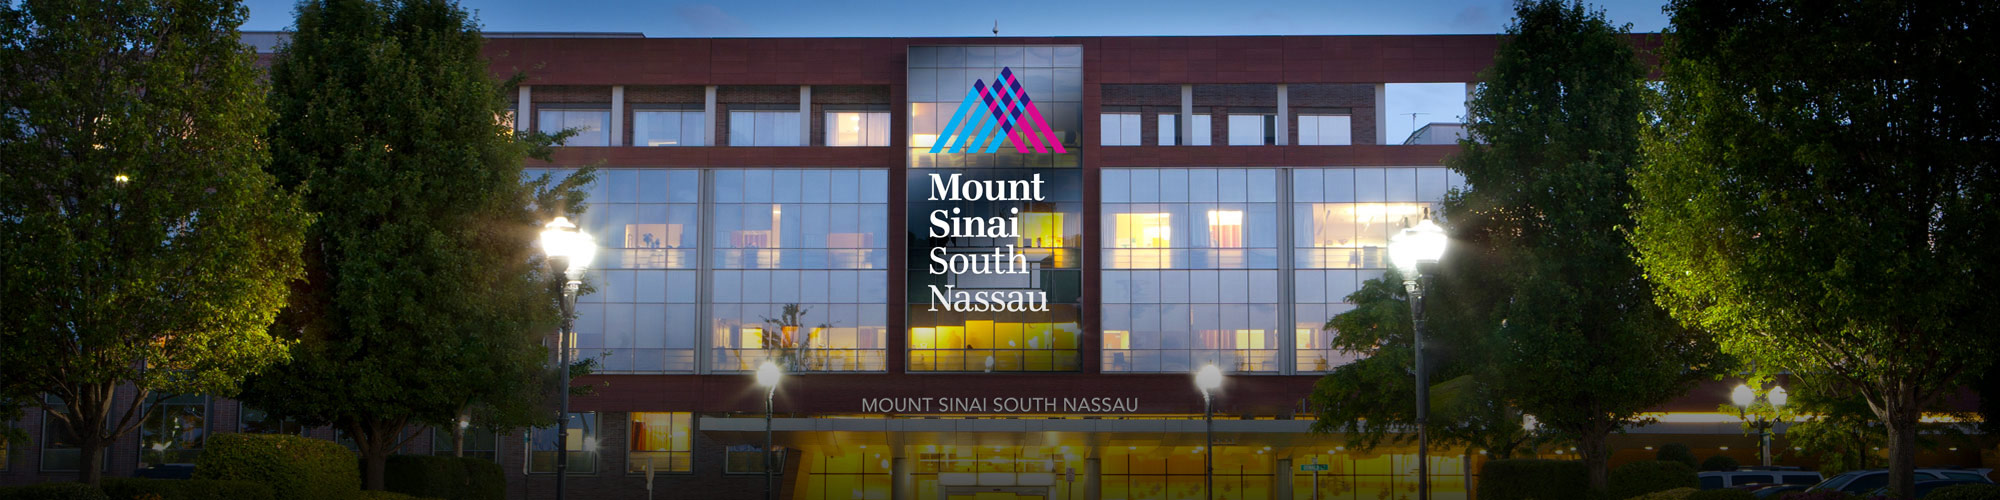 South Nassau is Renamed Mount Sinai South Nassau Long Island Flagship Hospital of the Mount Sinai Health System ... READ MORE>